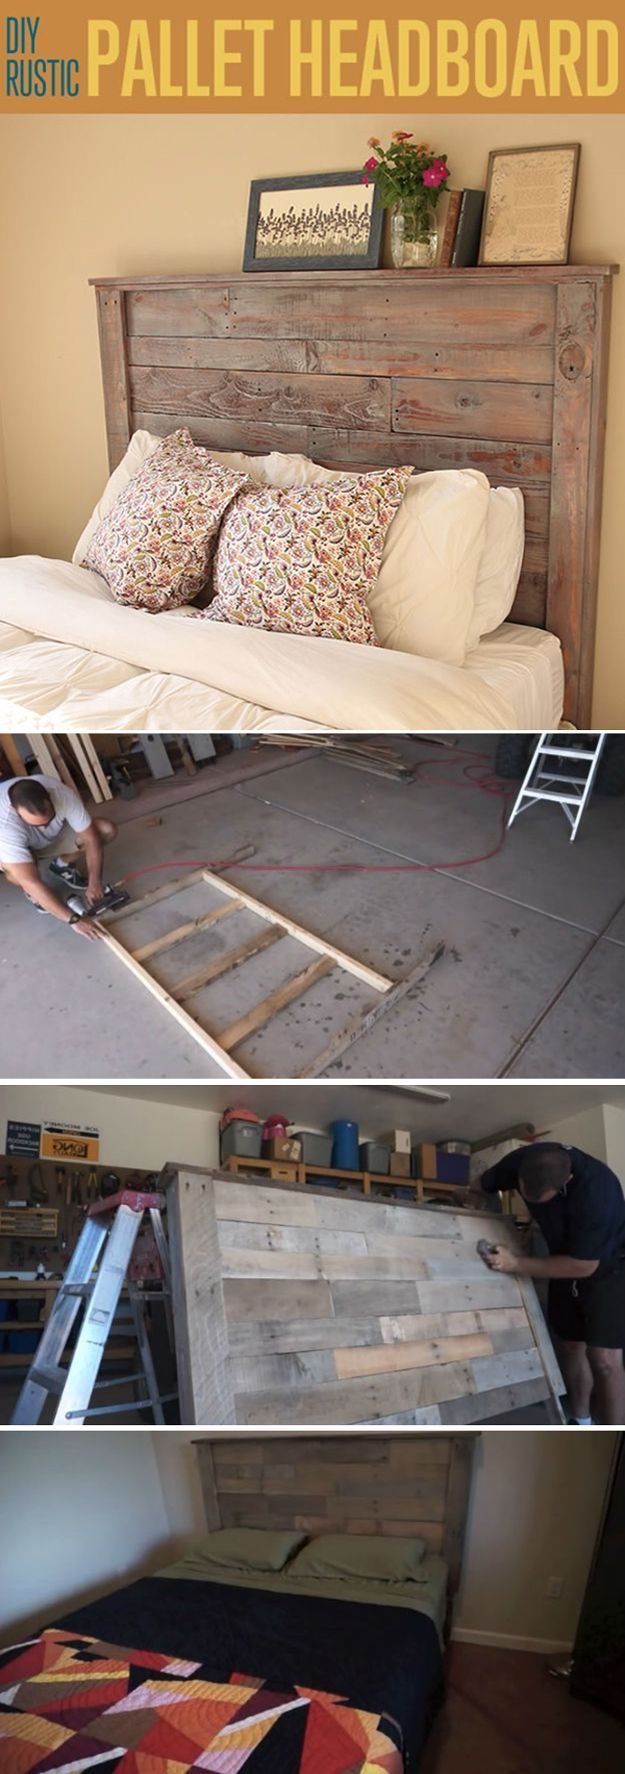 Rustic bed headboard - Diy Headboard Project Ideas For Every Home